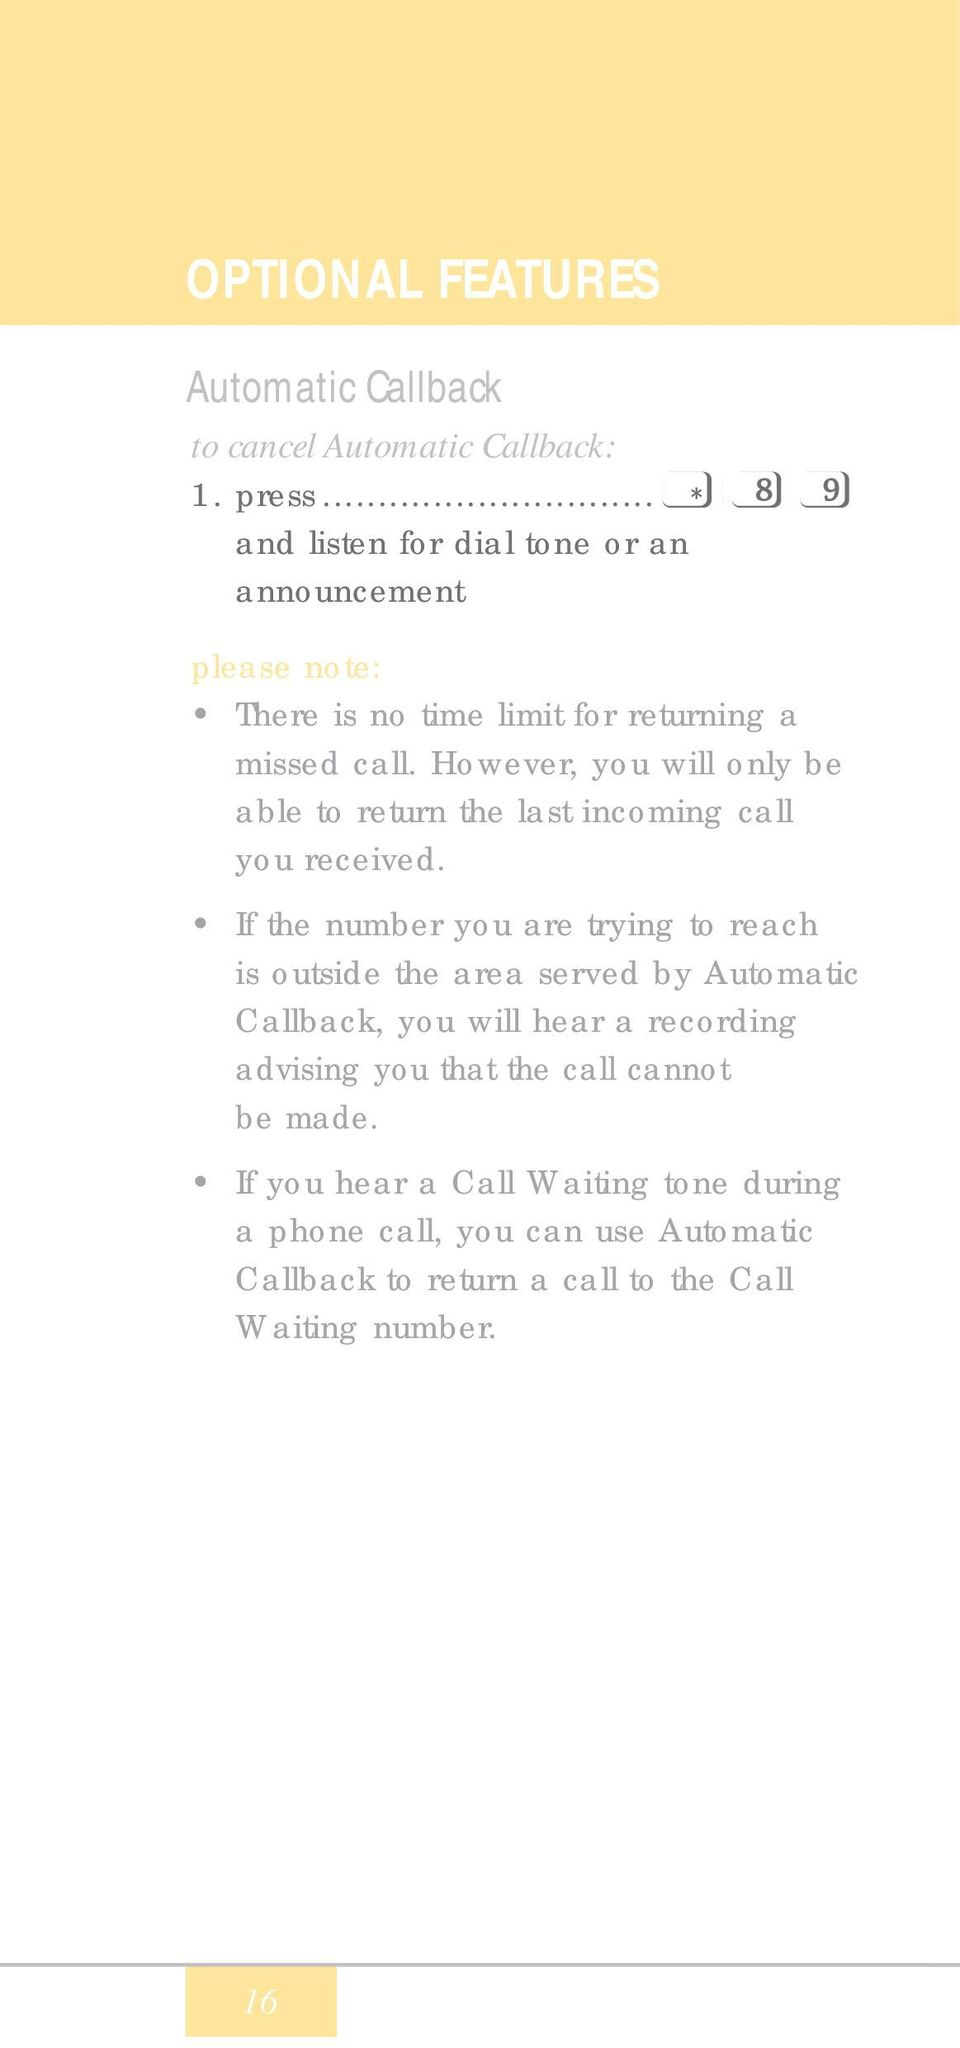 However, you will only be able to return the last incoming call you received.